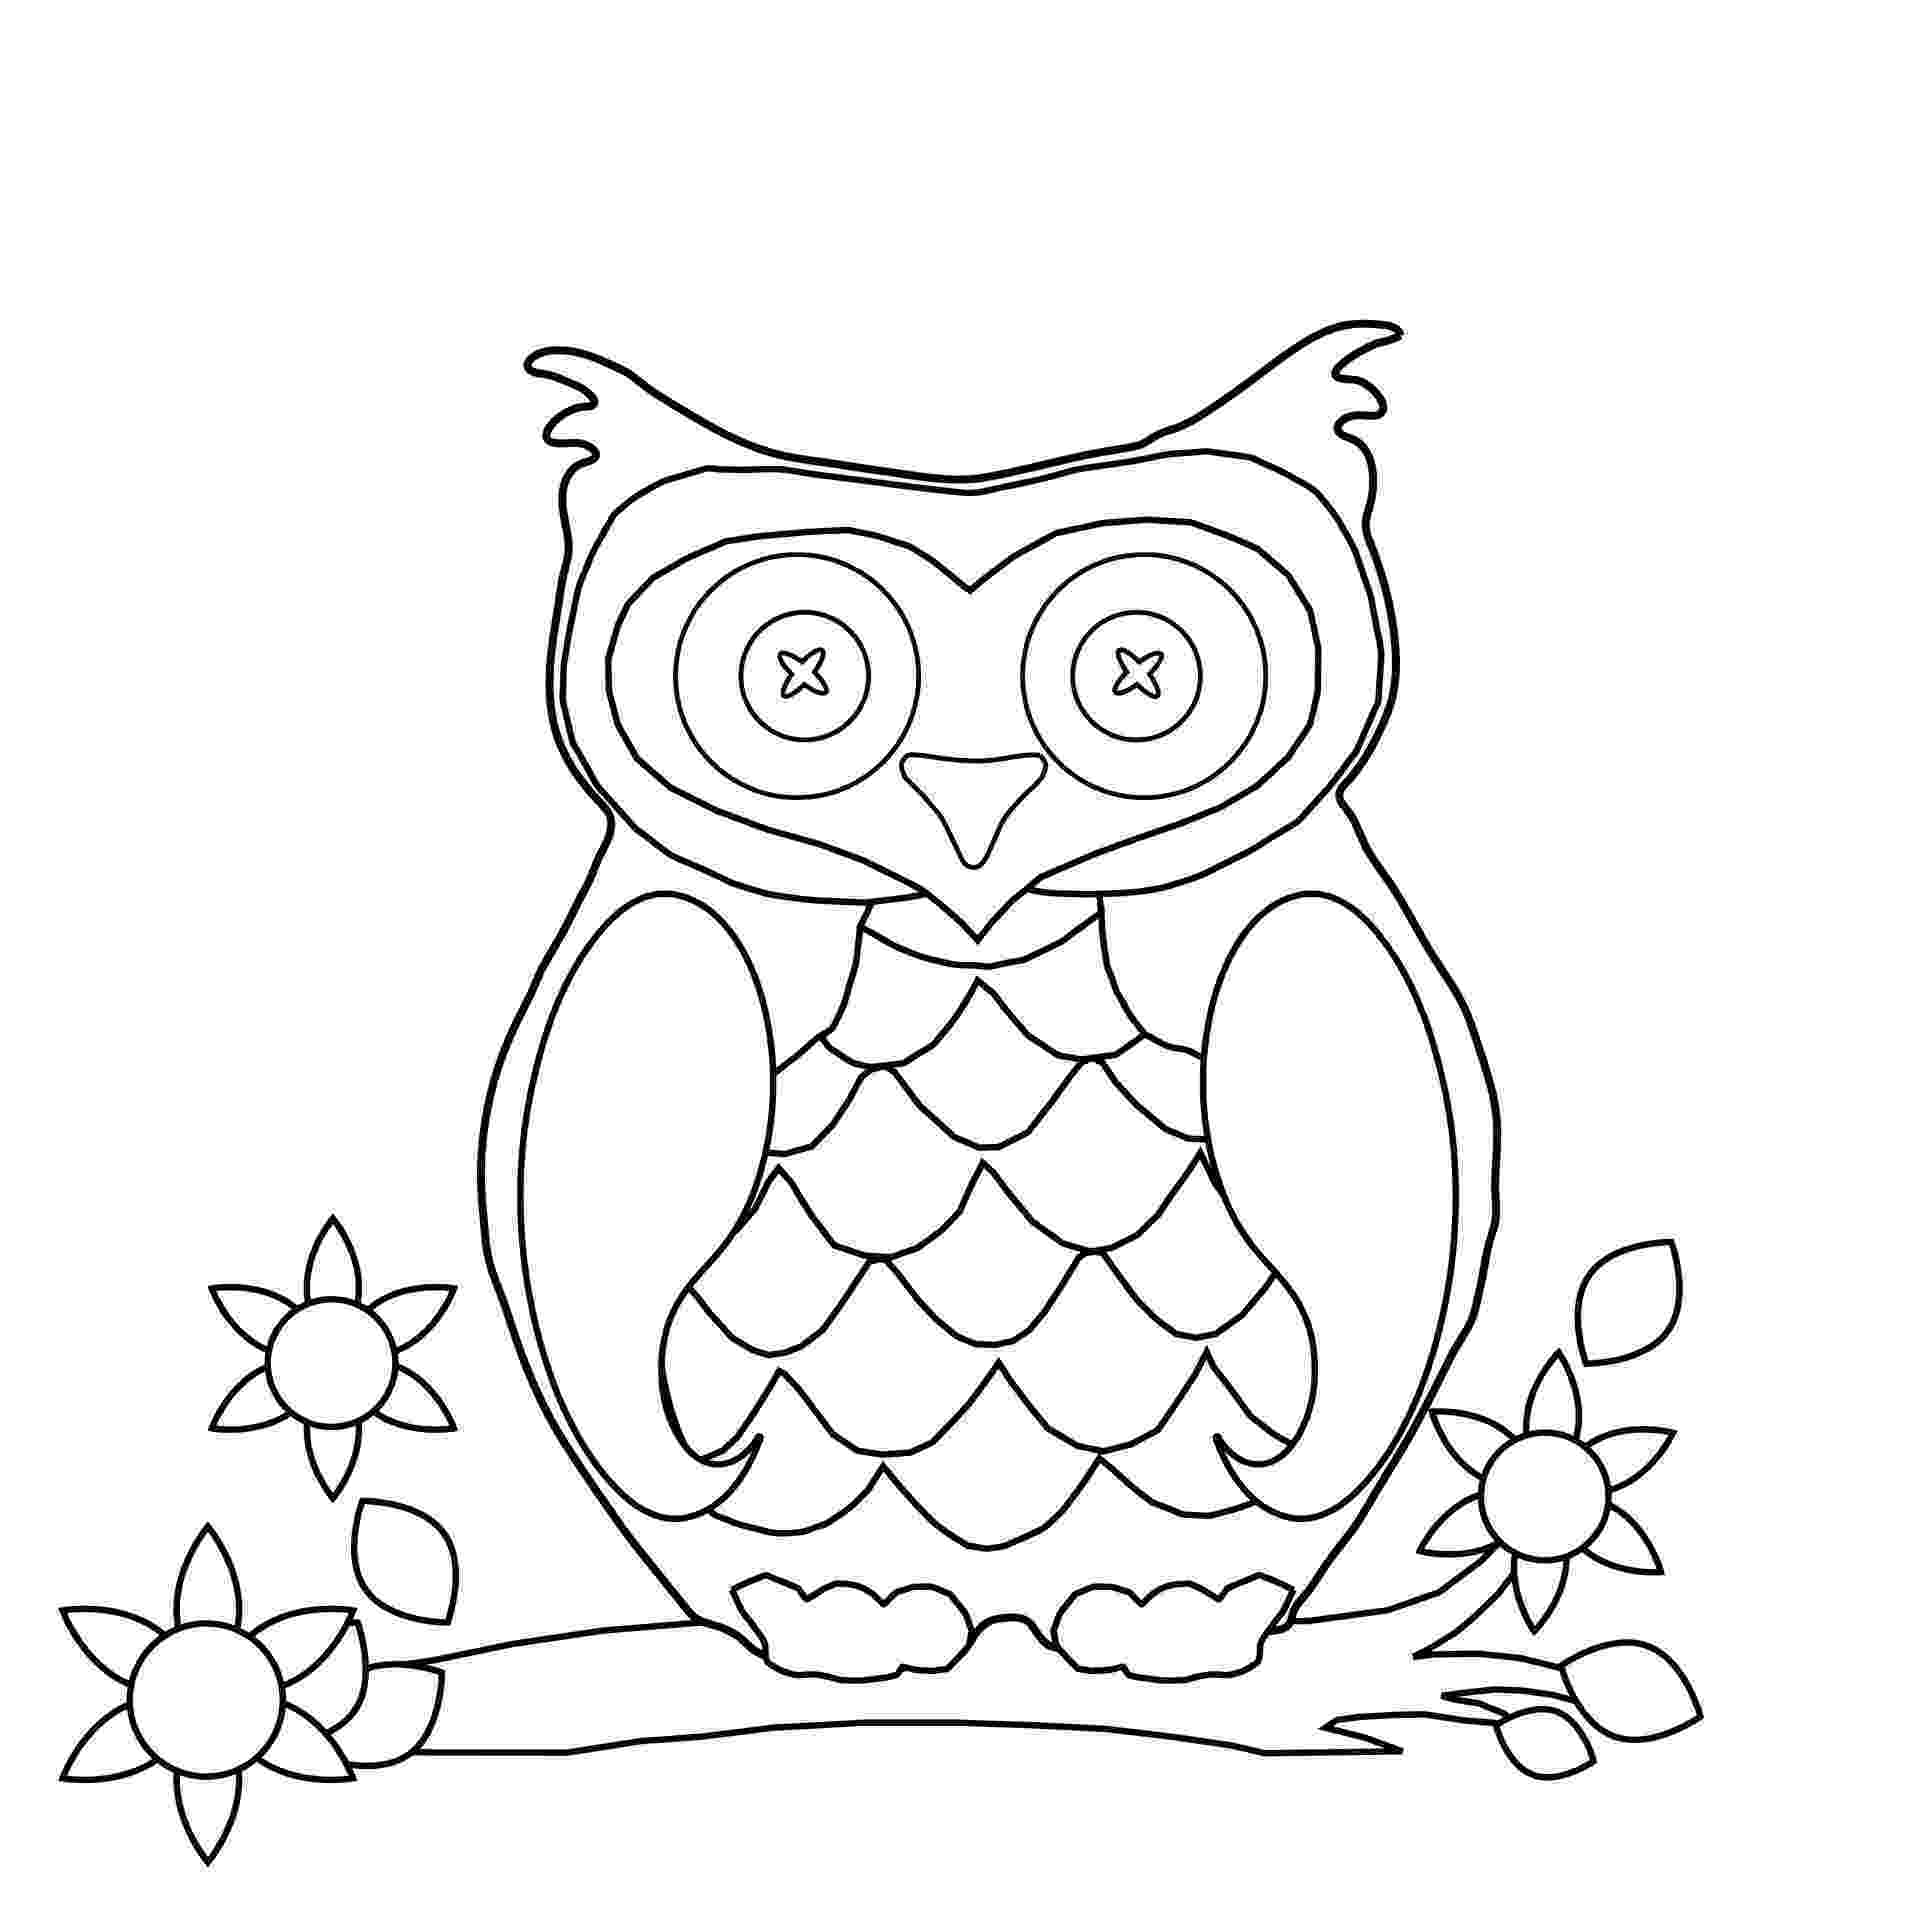 free owl printables make any picture a coloring page with ipiccy ipiccy free printables owl